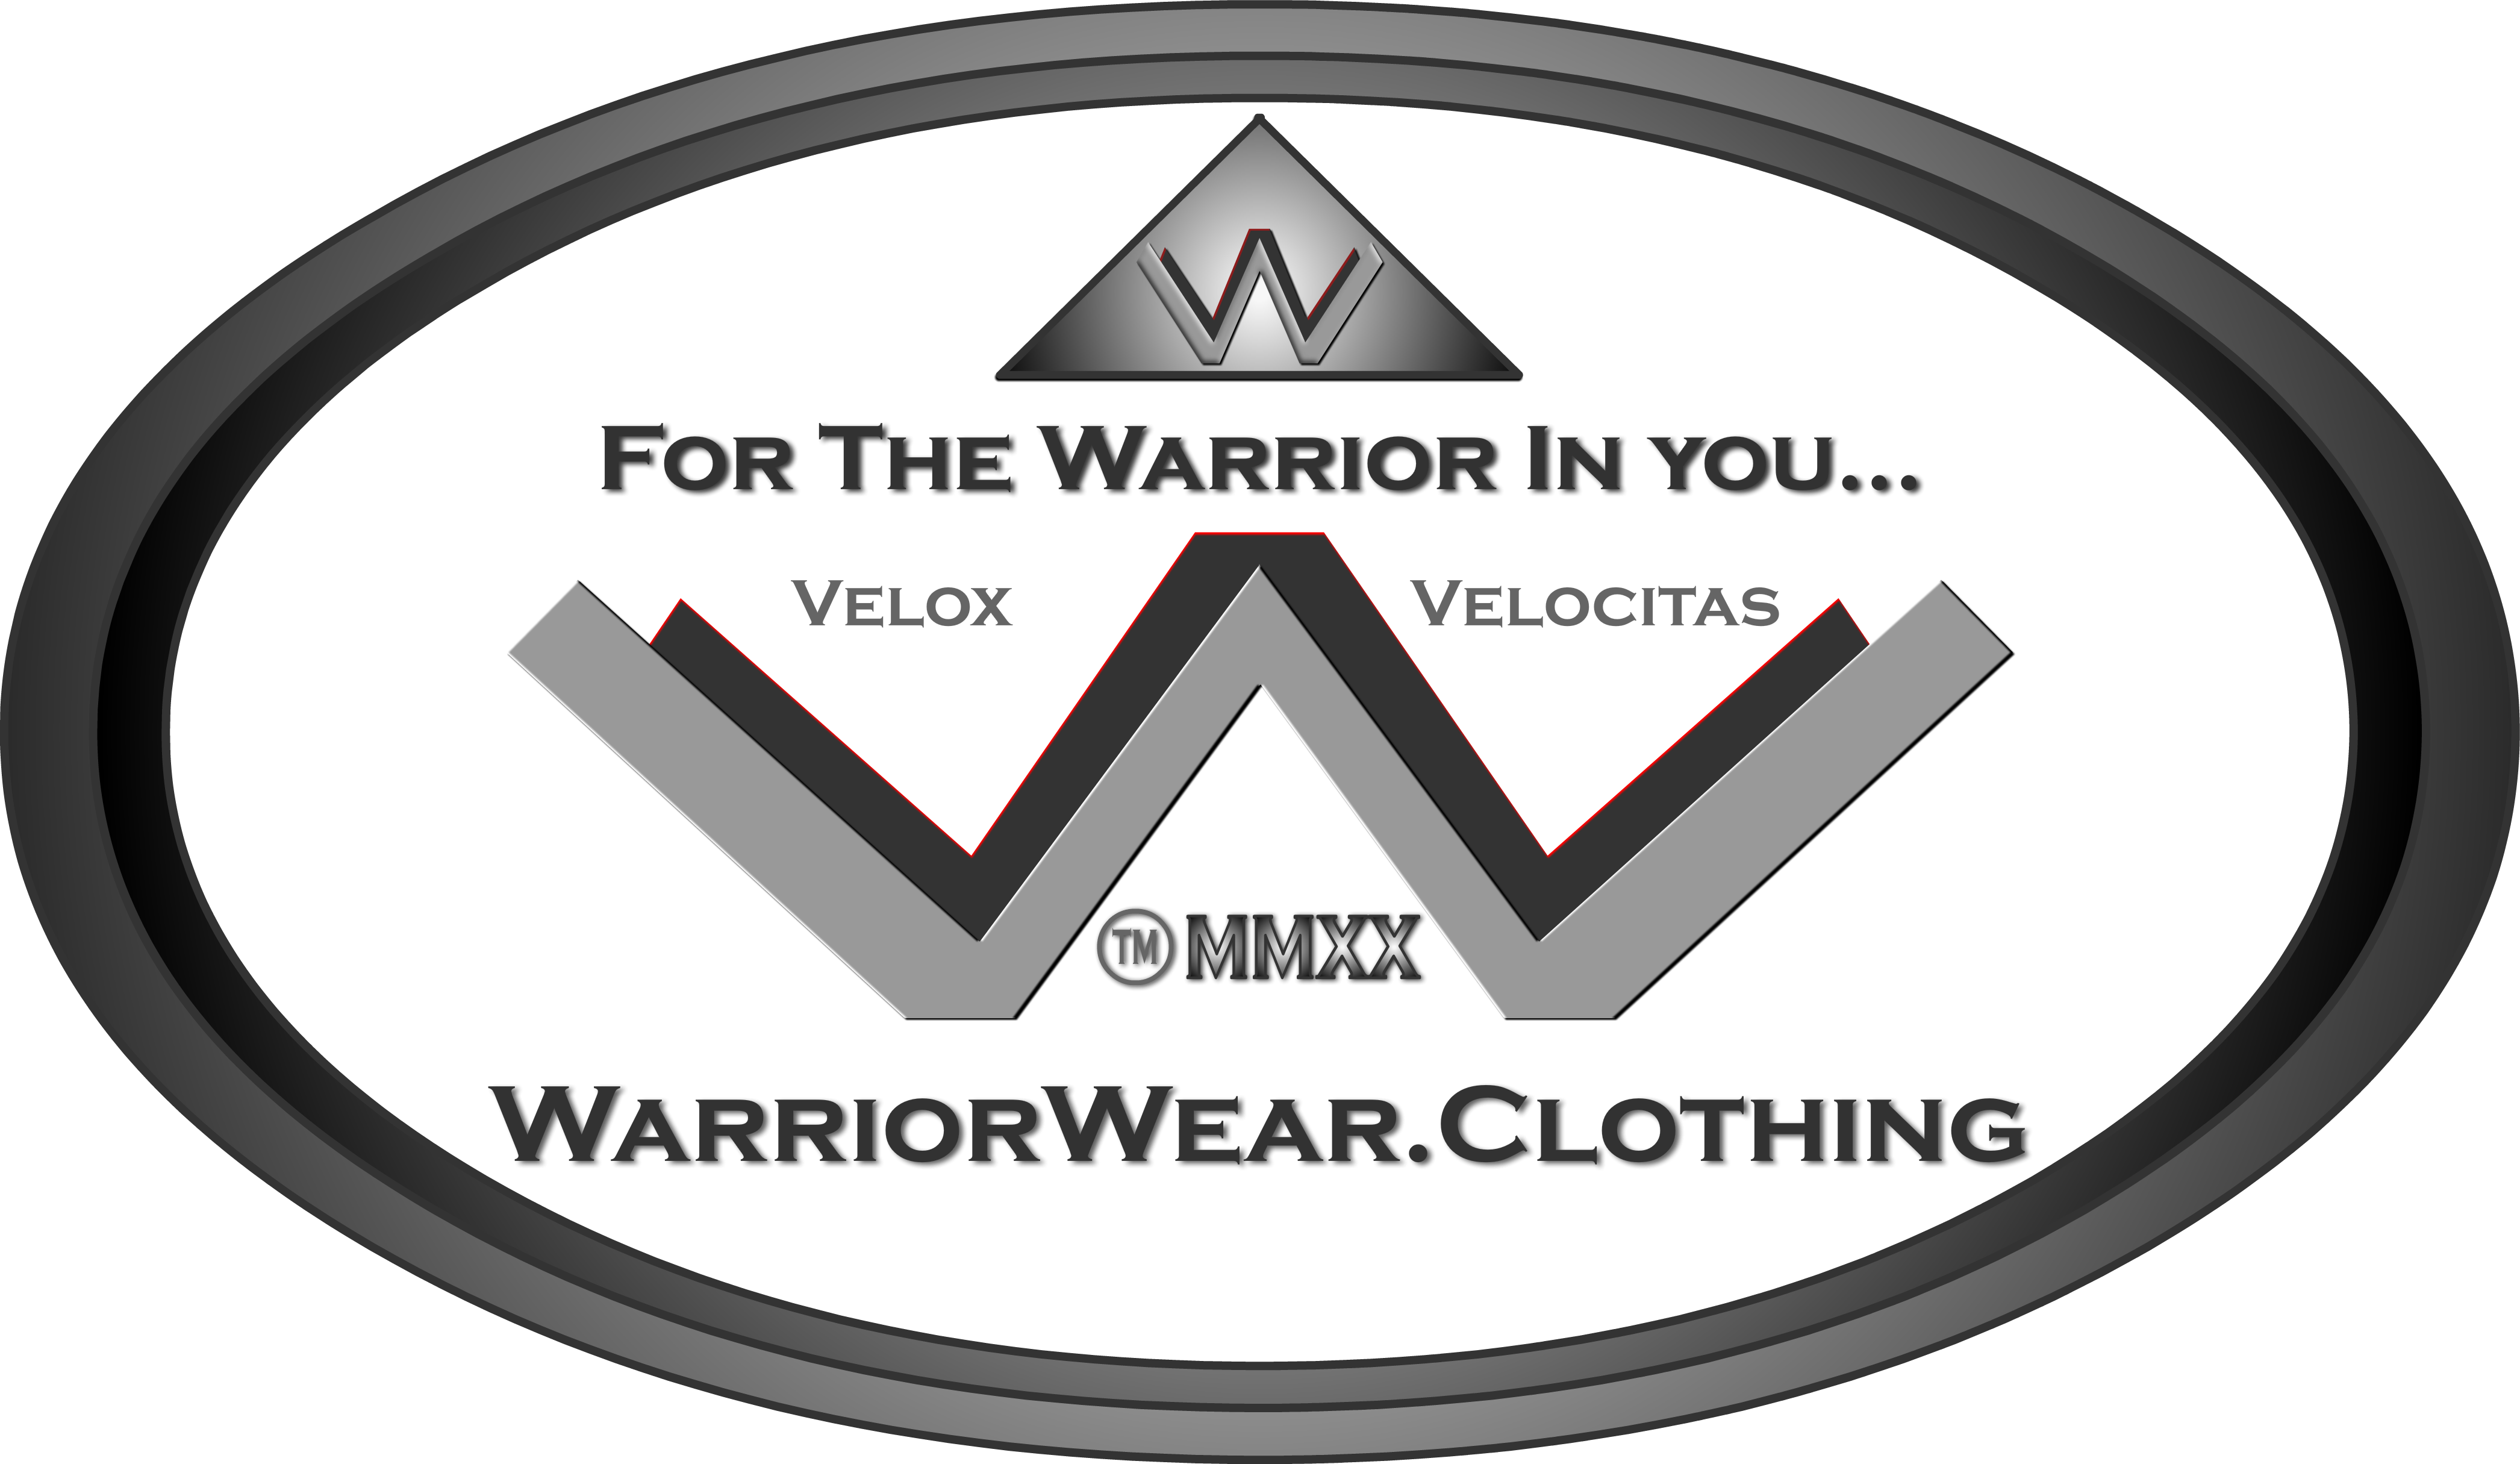 WarriorWear.Clothing ... For the Warrior in You...